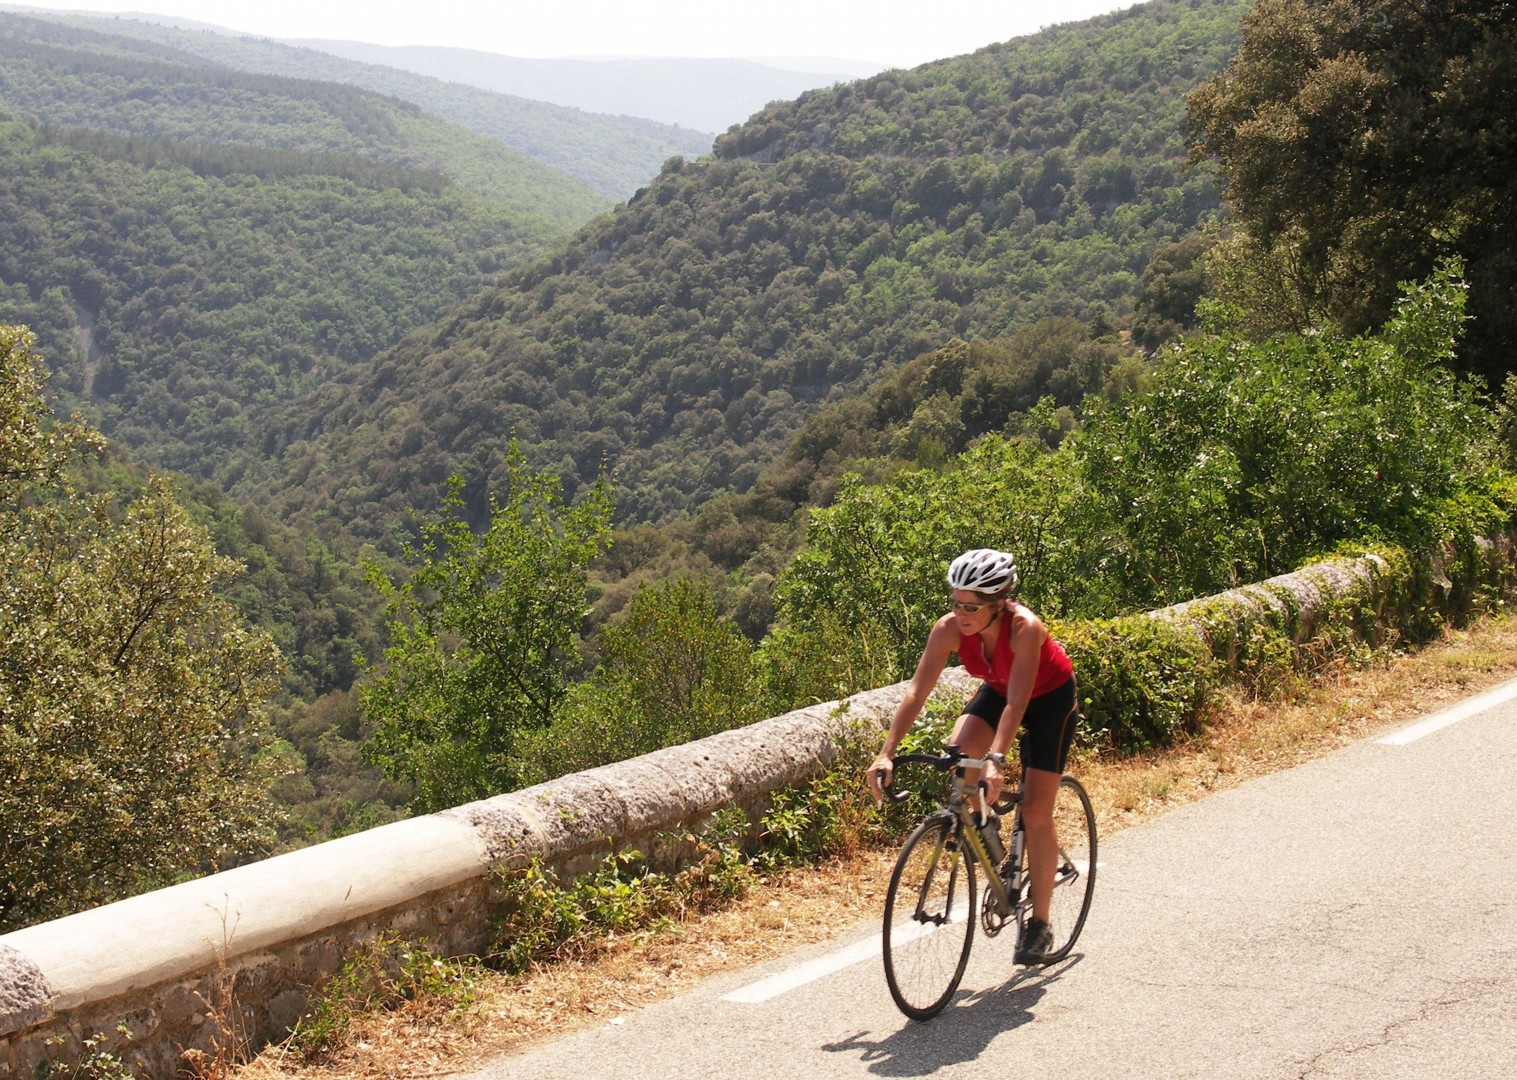 _Holiday.767.13300.jpg - Southern Spain - Andalucia - Los Pueblos Blancos - Guided Road Cycling Holiday - Road Cycling